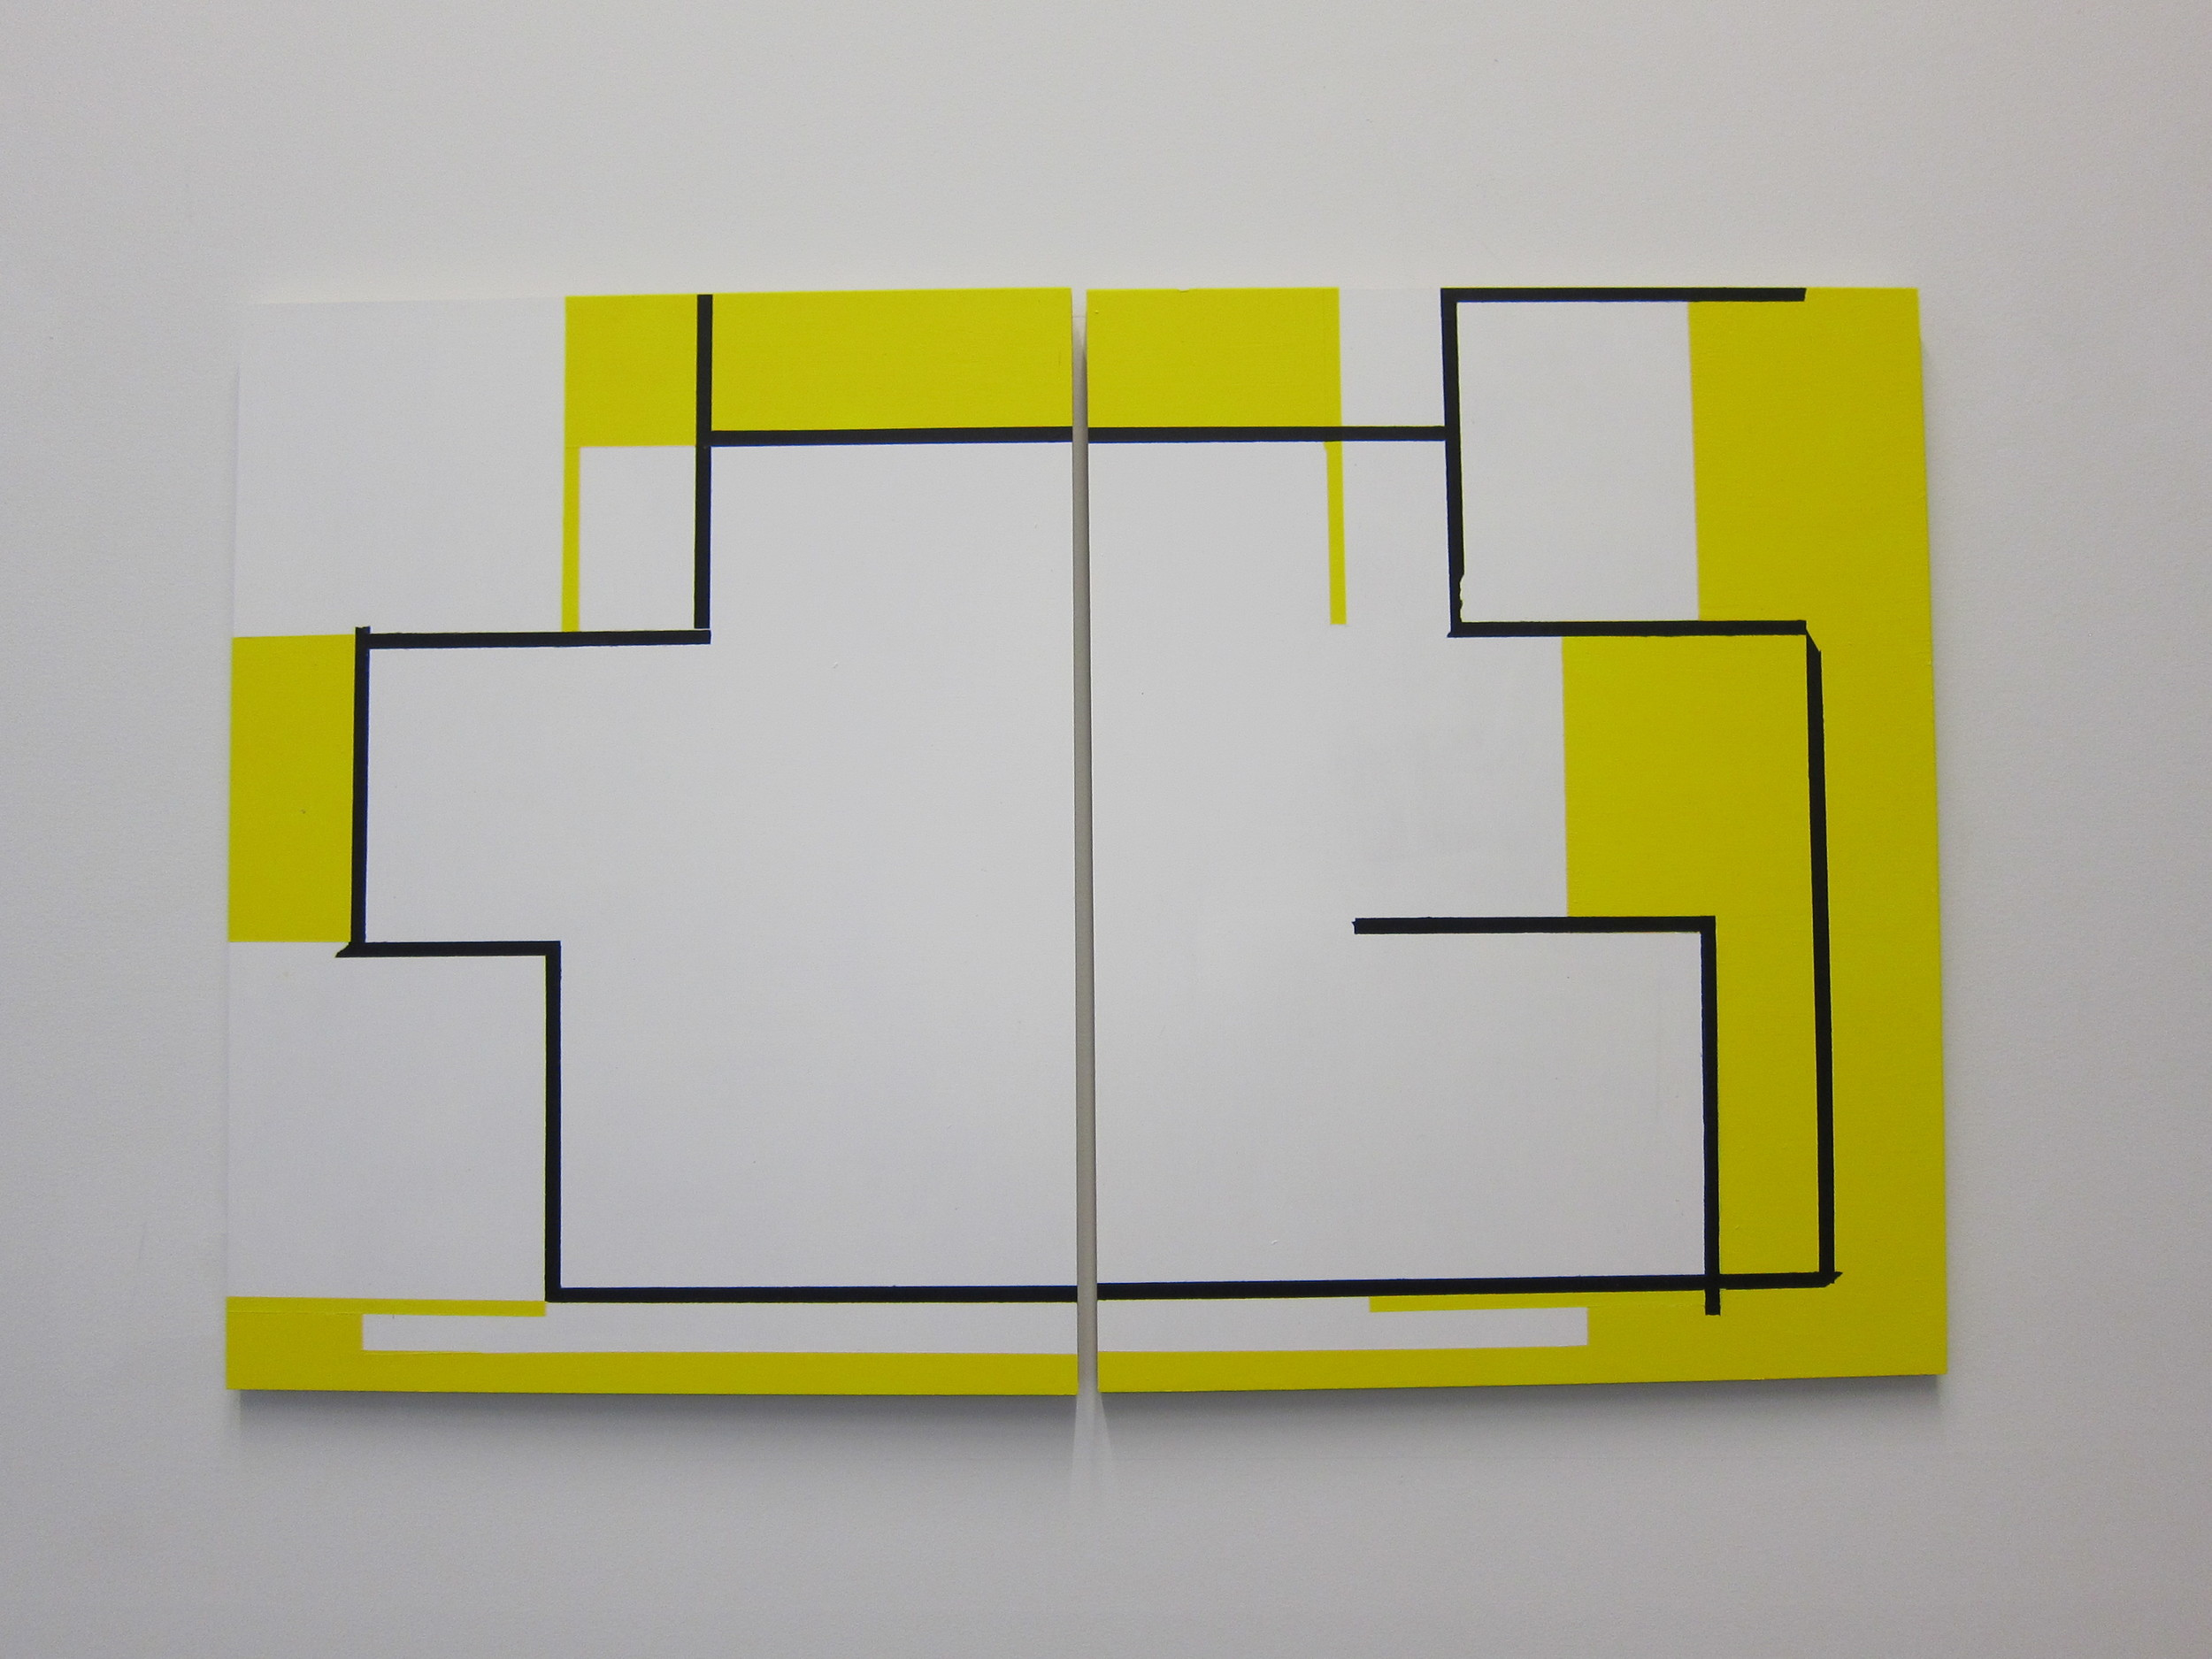 Marjorie Welish Indecidability of the Sign: Frame 28 2011 Acrylic on Panel  18x28 inches (two panels)